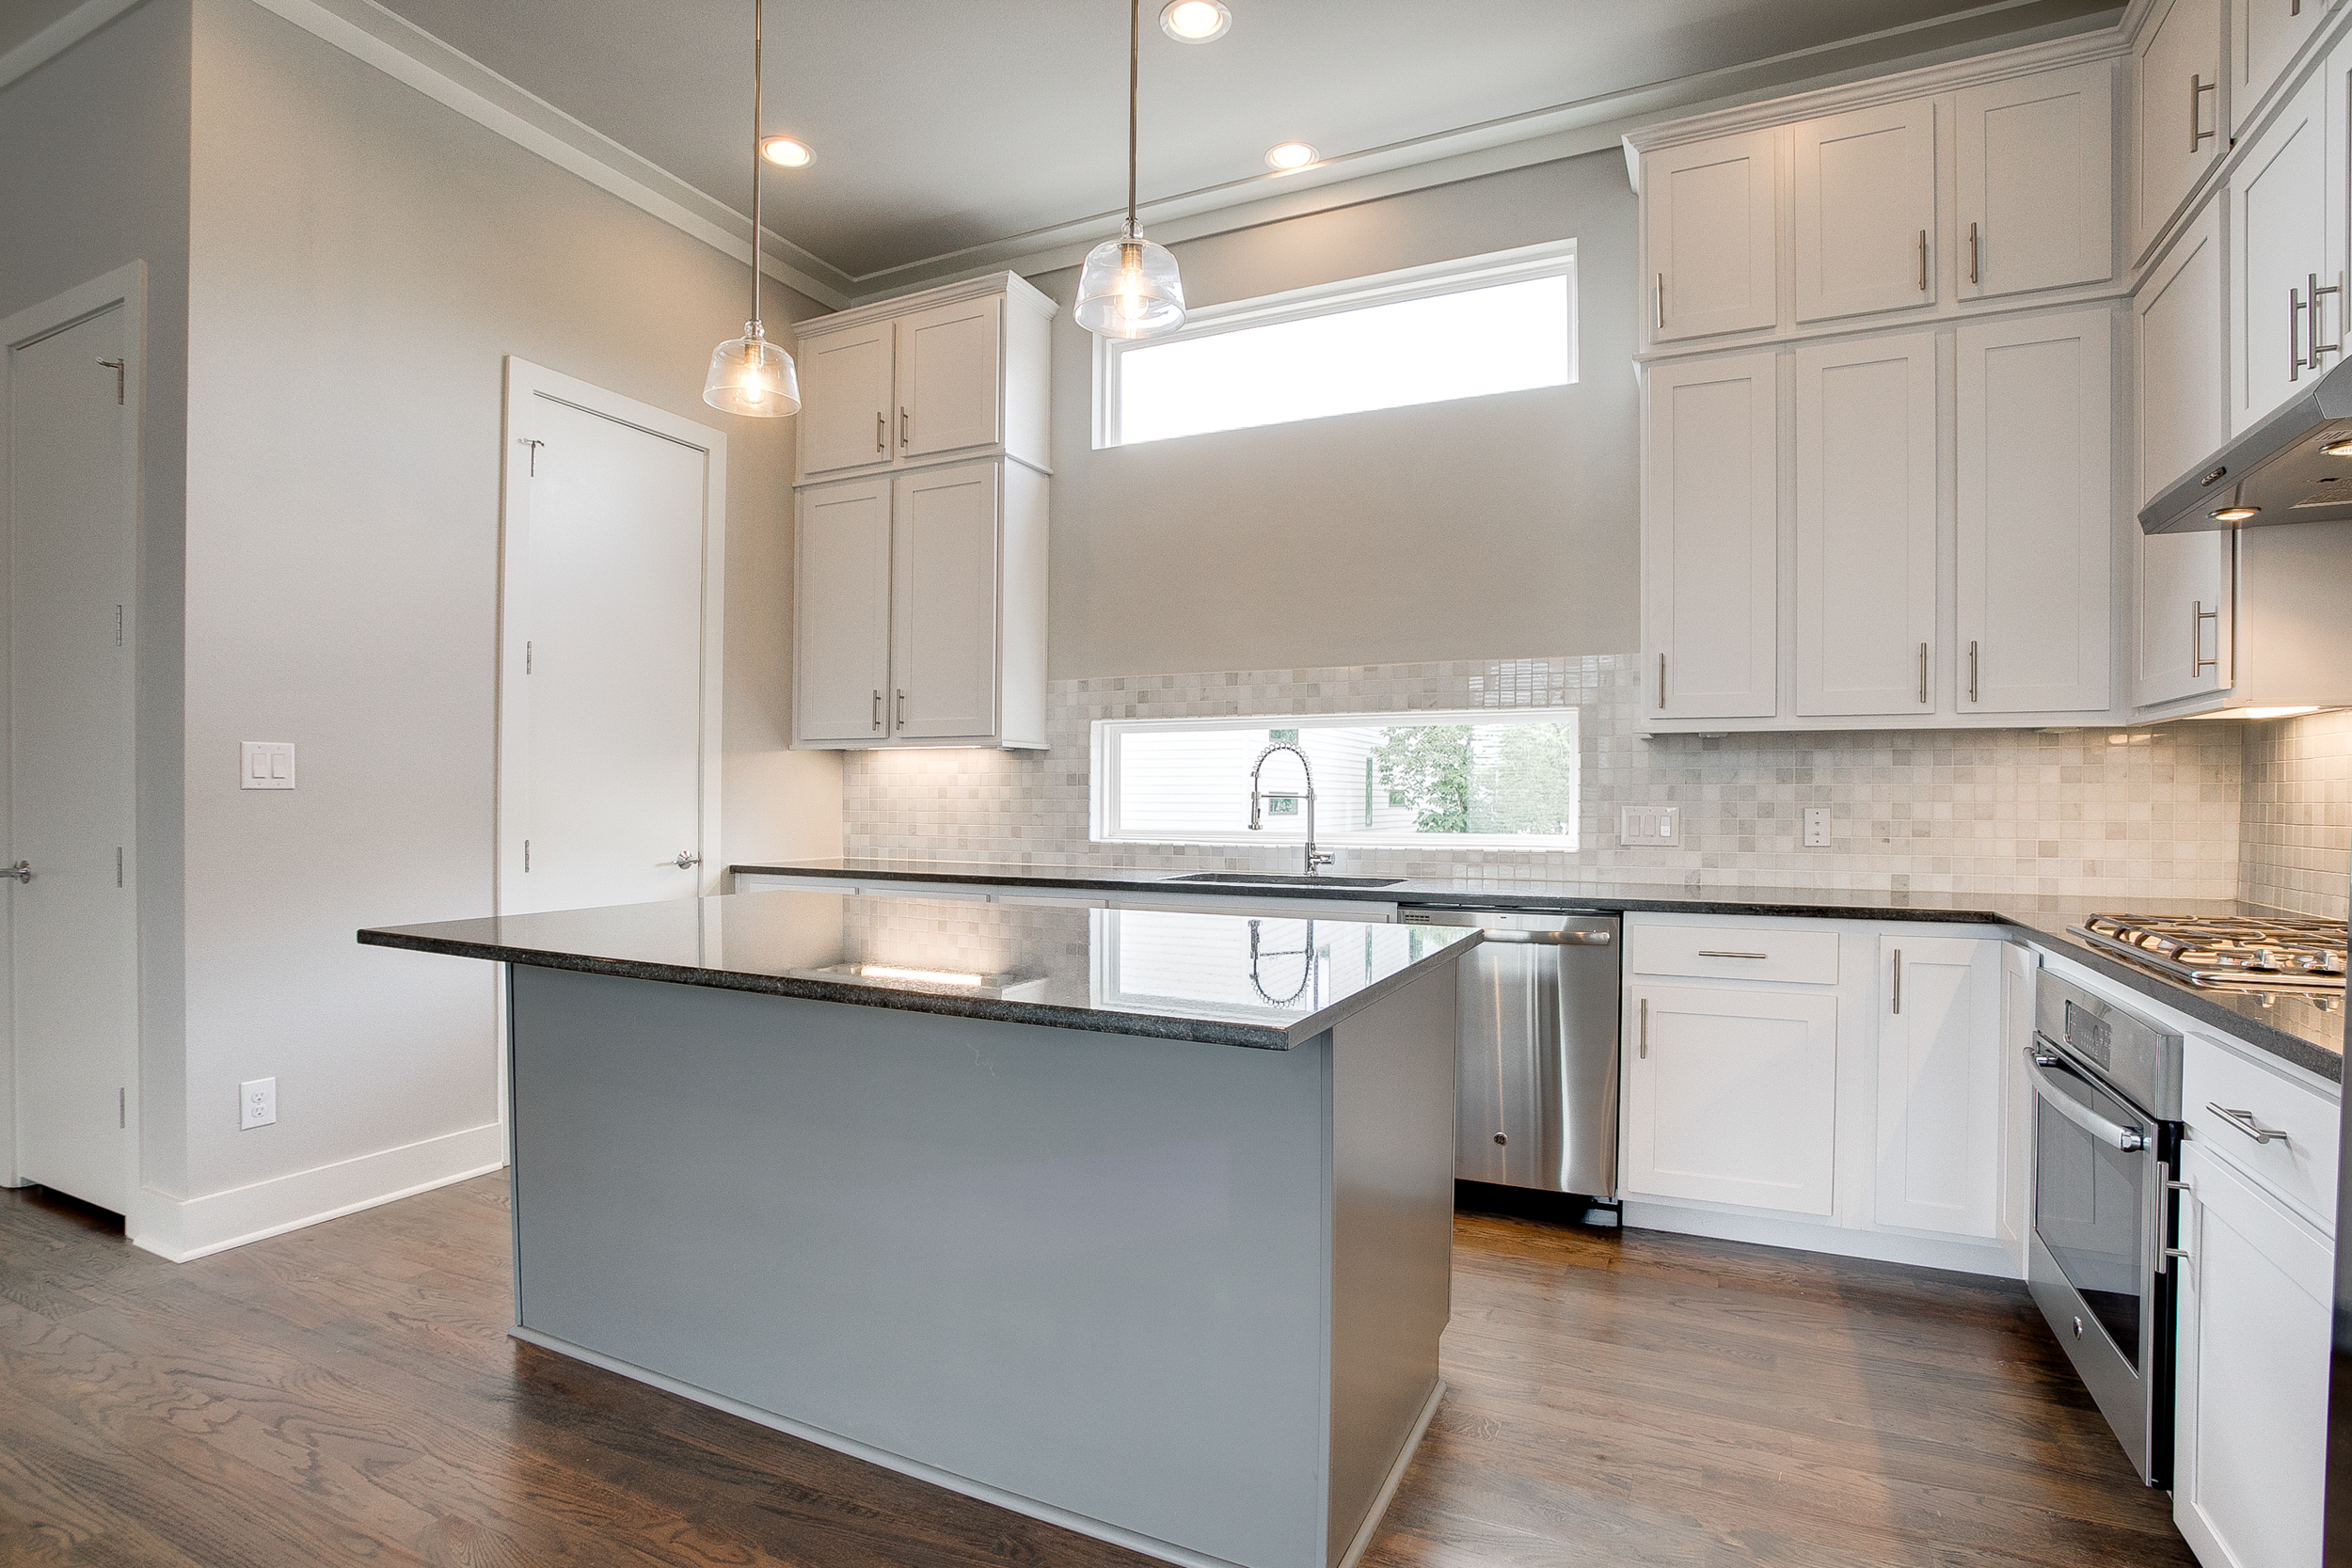 Interior view of a kitchen with white cabinets, white tile backsplash, stainless steel appliances, and a center island